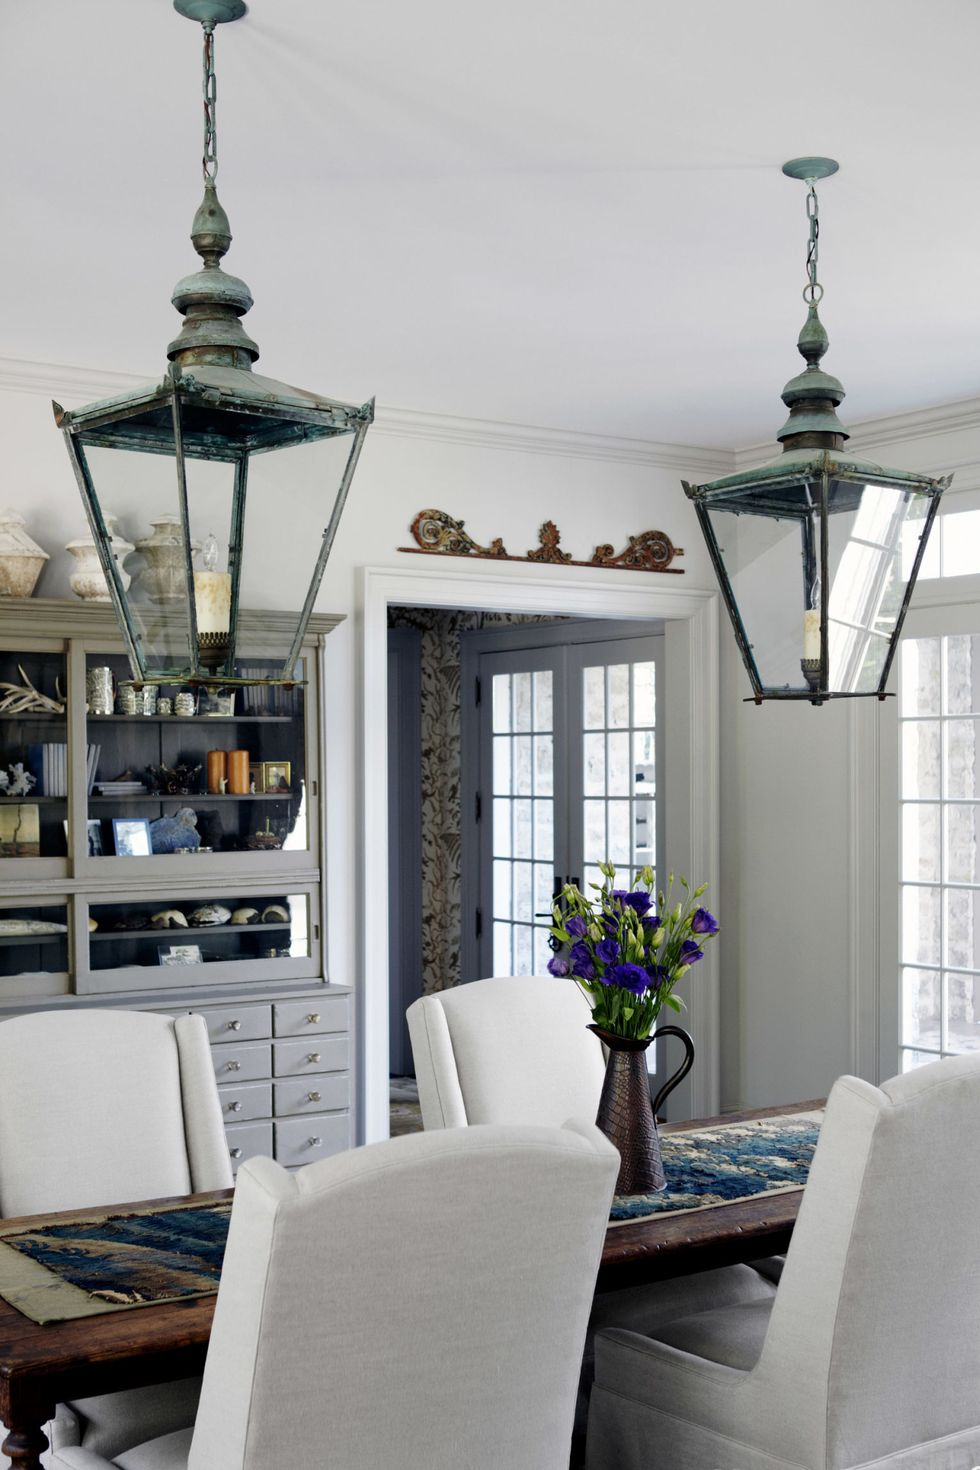 Cozy and Inviting Dining Room: Get the Look